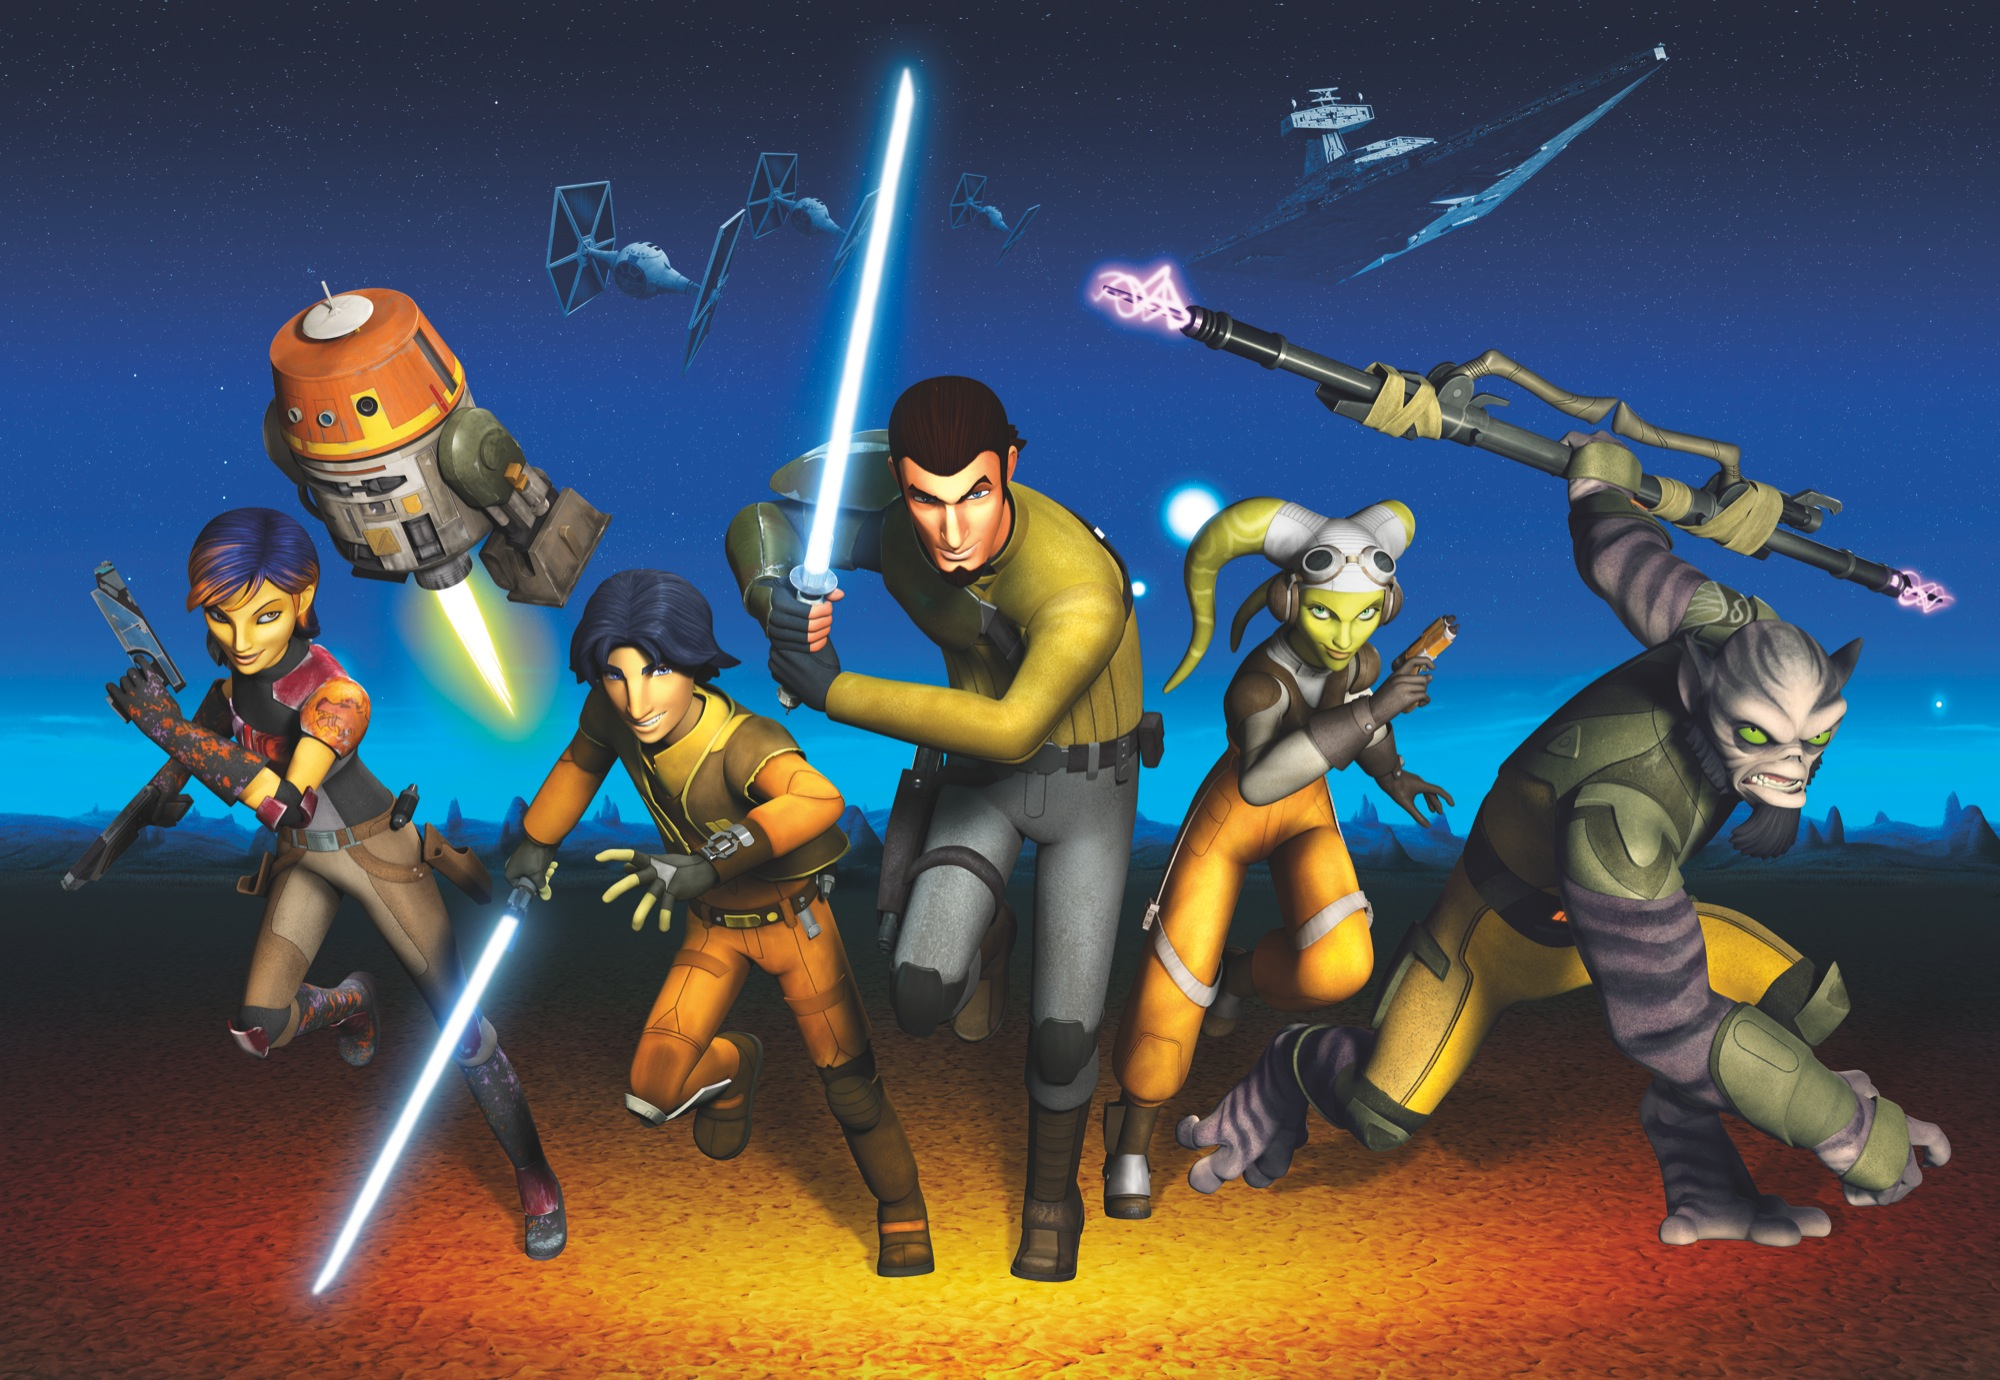 8-486_Star_Wars_Rebels_Run_ma